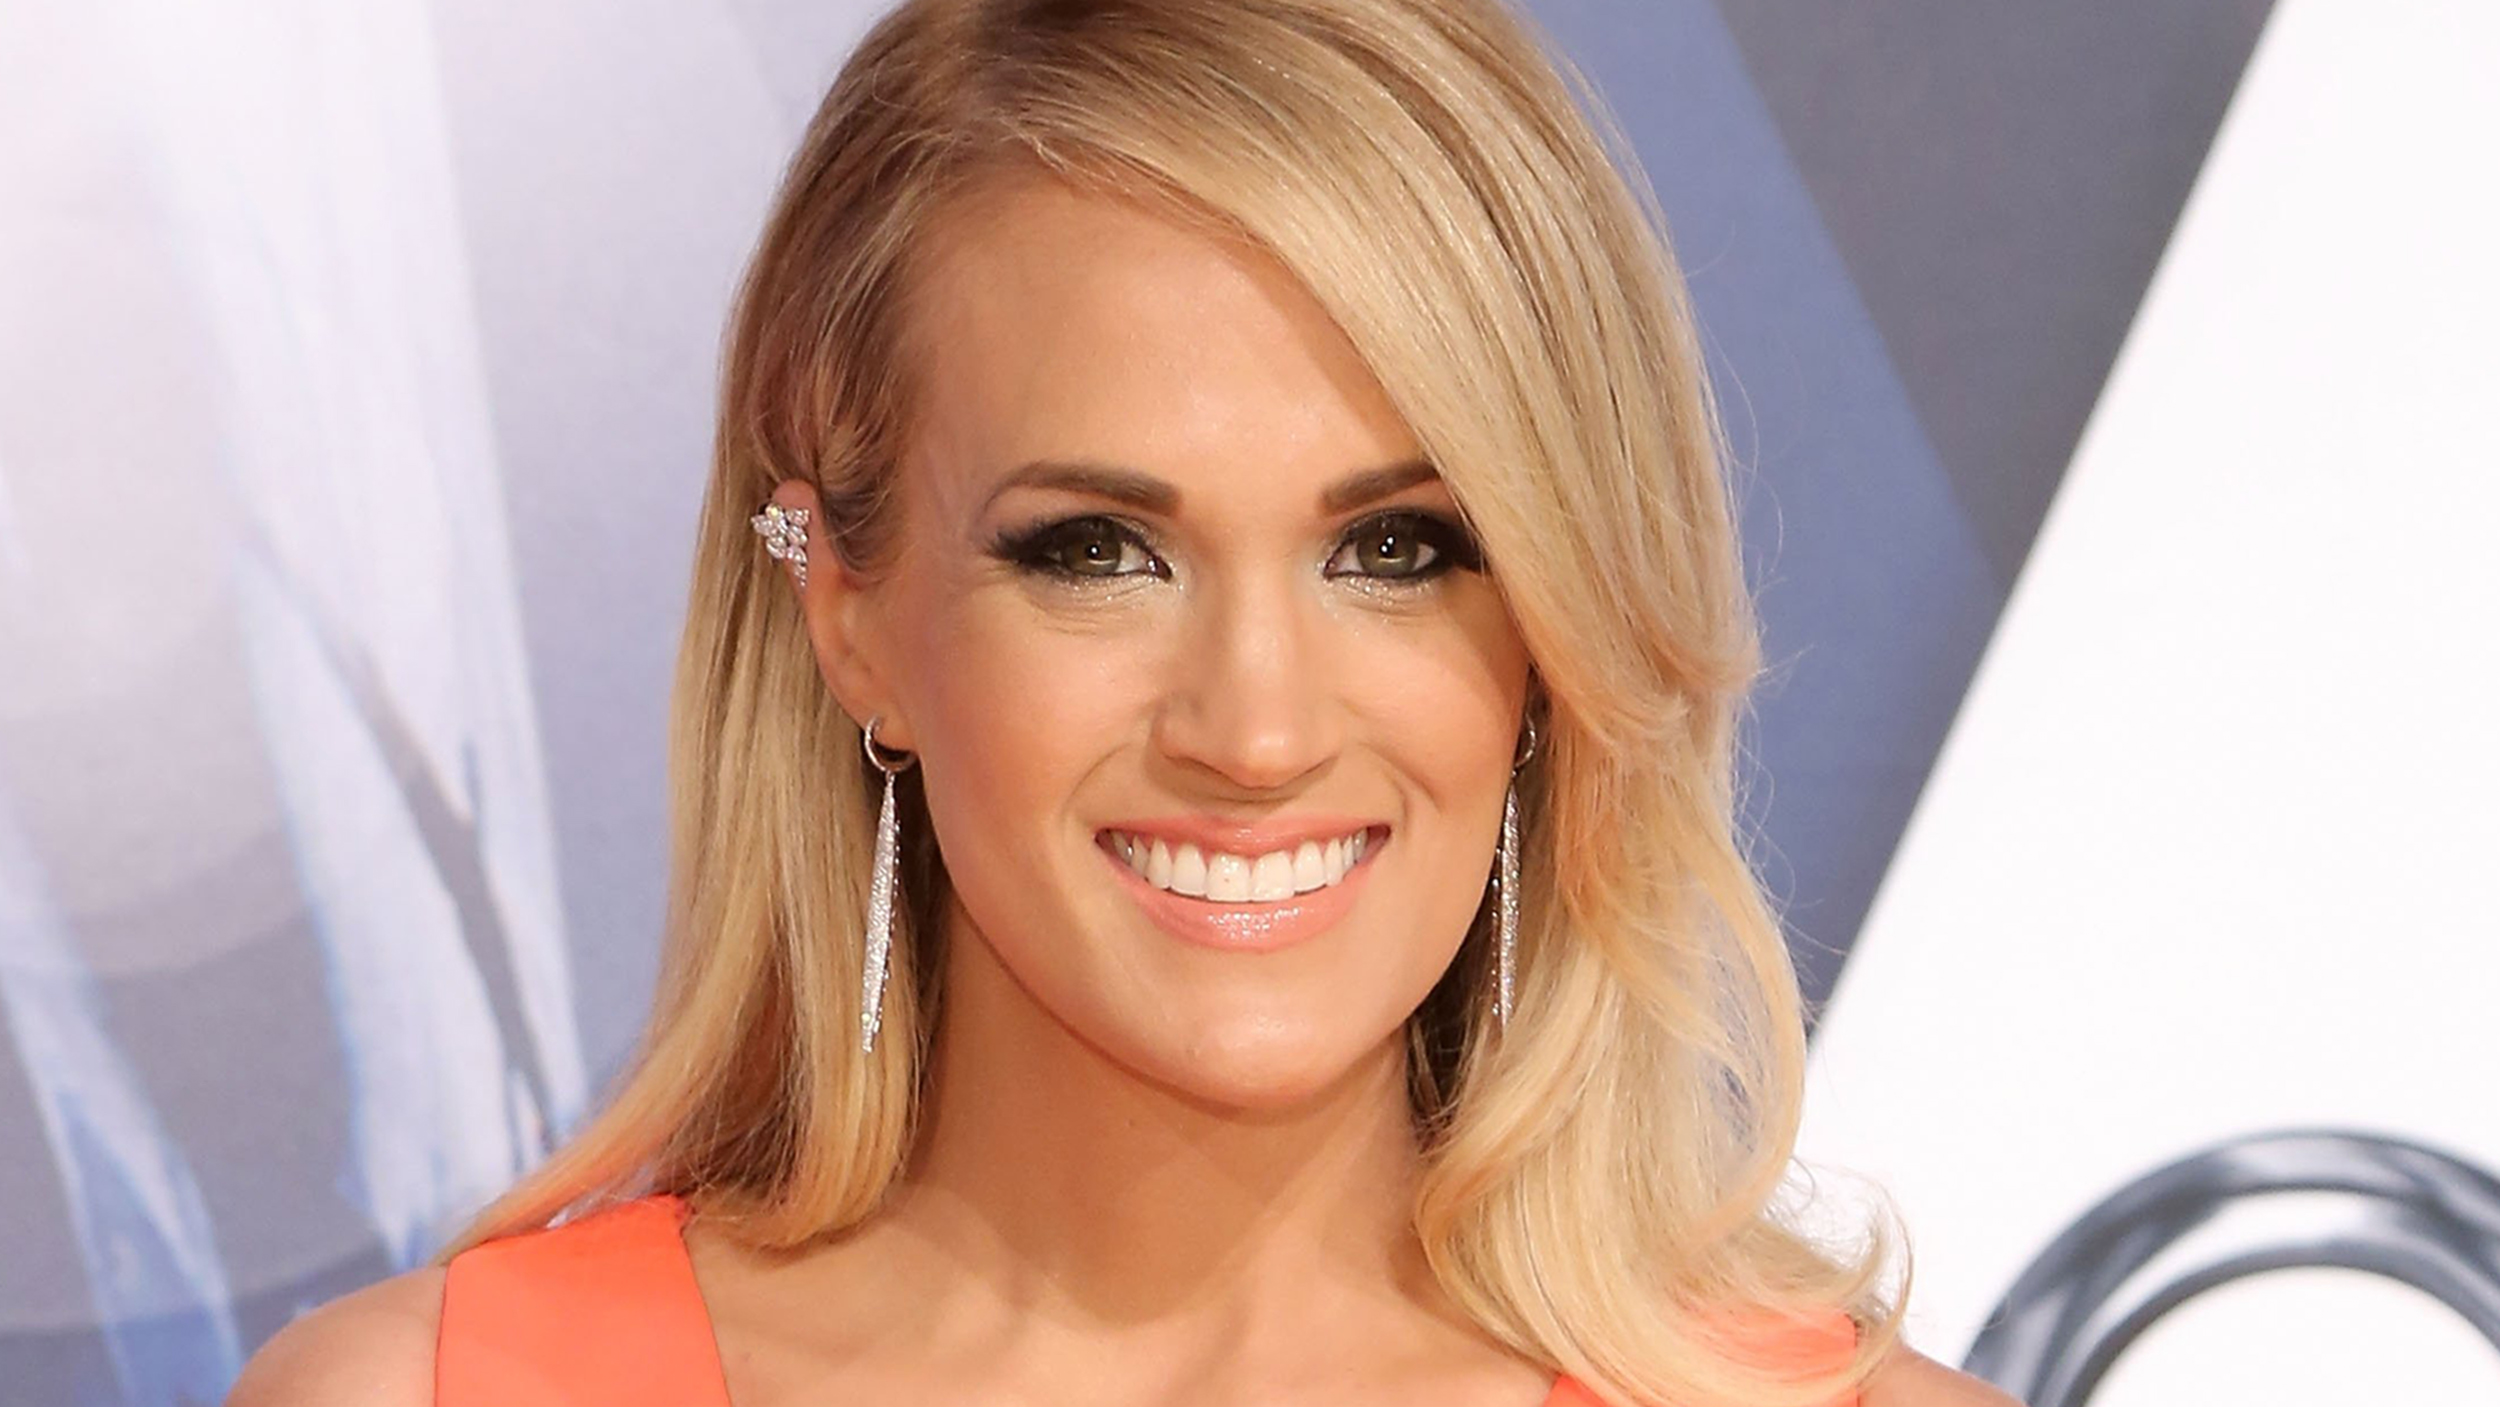 carrie underwood wikicarrie underwood - church bells, carrie underwood - dirty laundry, carrie underwood blown away, carrie underwood there's a place for us, carrie underwood - church bells скачать, carrie underwood church bells перевод, carrie underwood слушать, carrie underwood wiki, carrie underwood - dirty laundry перевод, carrie underwood vk, carrie underwood - good girl, carrie underwood скачать, carrie underwood – mama's song, carrie underwood songs, carrie underwood - dirty laundry скачать, carrie underwood little toy guns, carrie underwood ever ever after, carrie underwood see you again, carrie underwood - heartbeat, carrie underwood - just a dream